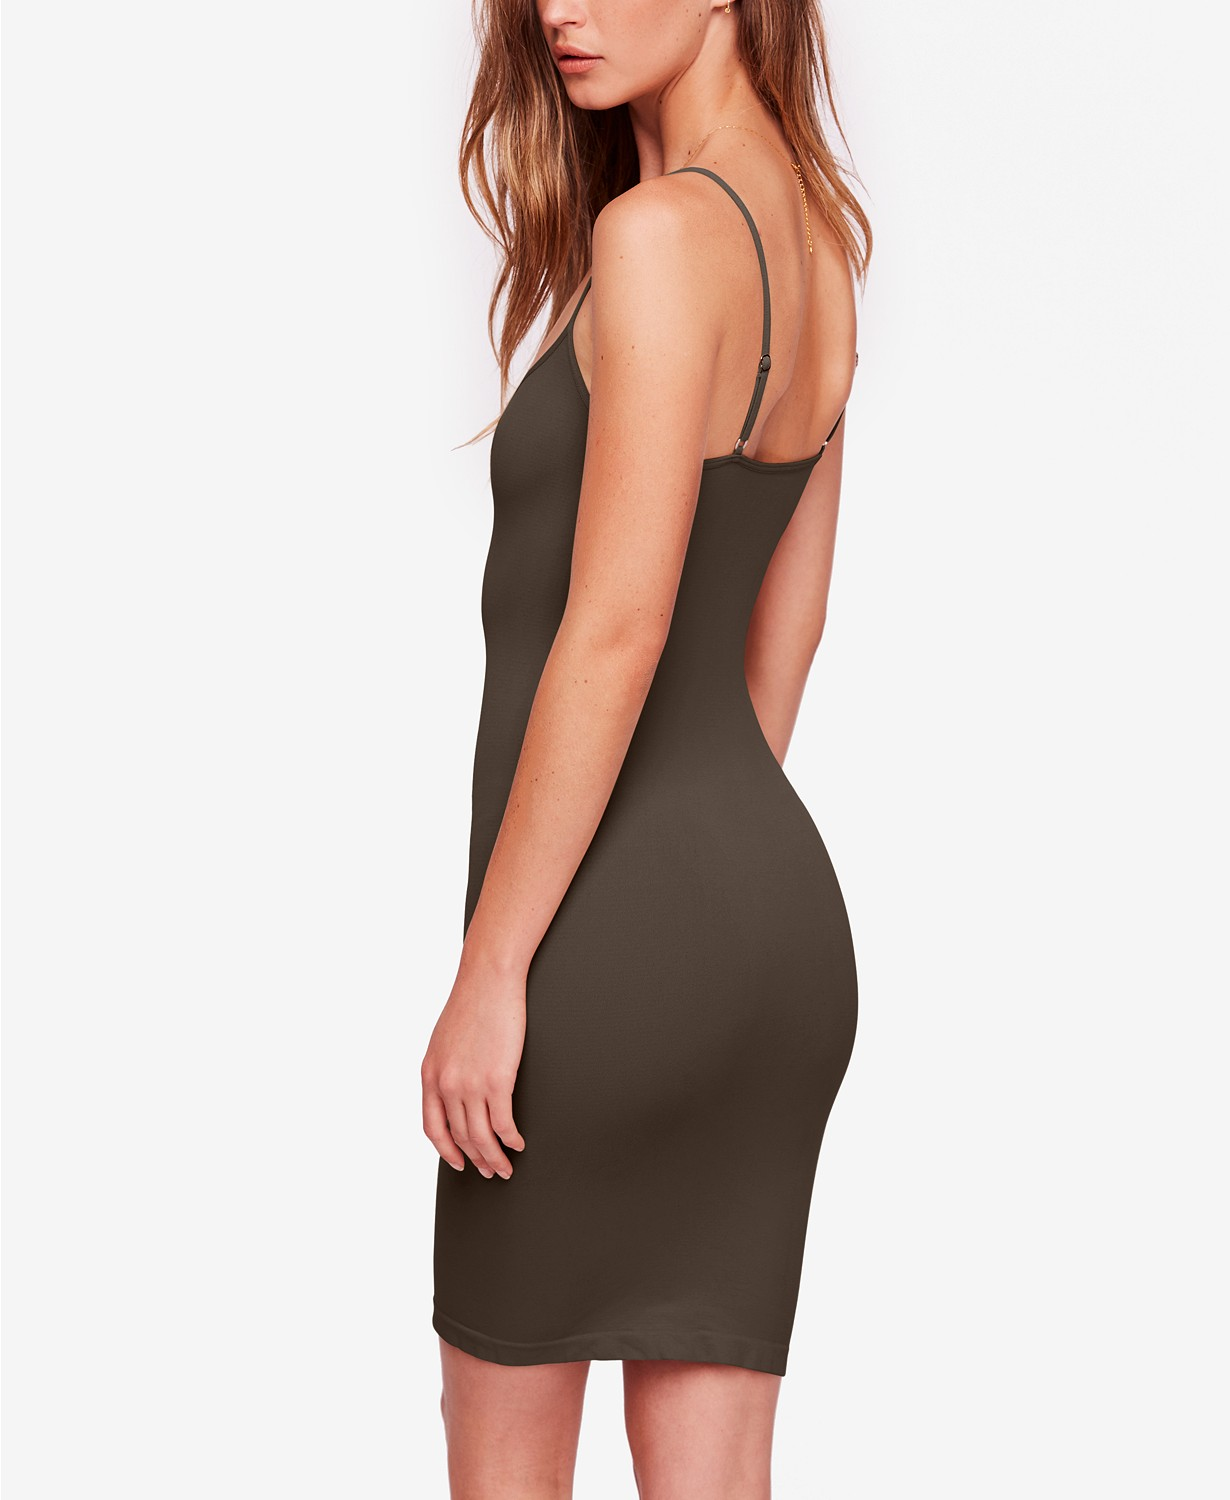 New-Free-People-Intimately-Seamless-Mini-Slip-Bodycon-Dress-Womens-Xs-L-30 thumbnail 14